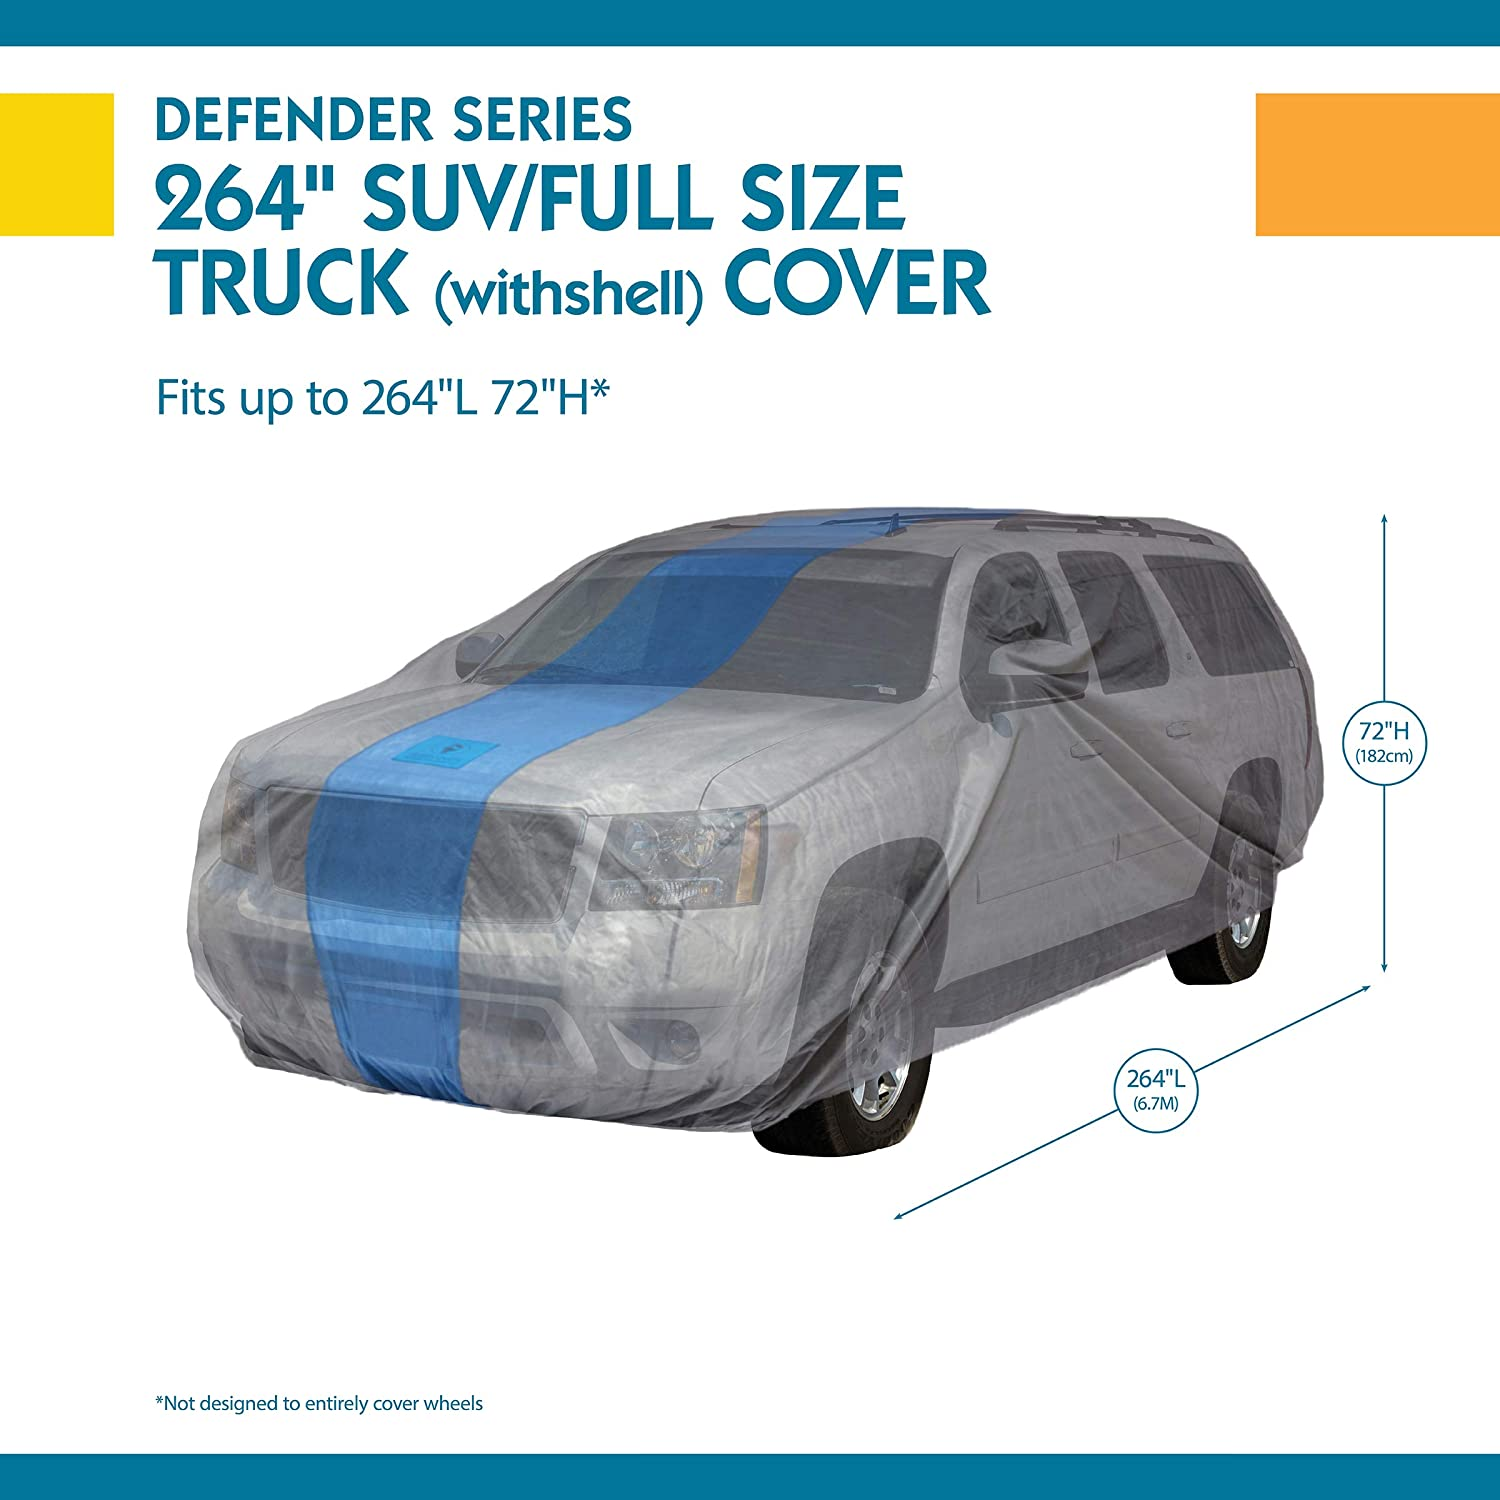 Duck Covers Defender SUV Cover for SUVs//Pickup Trucks with Shell or Bed Cap up to 17 5